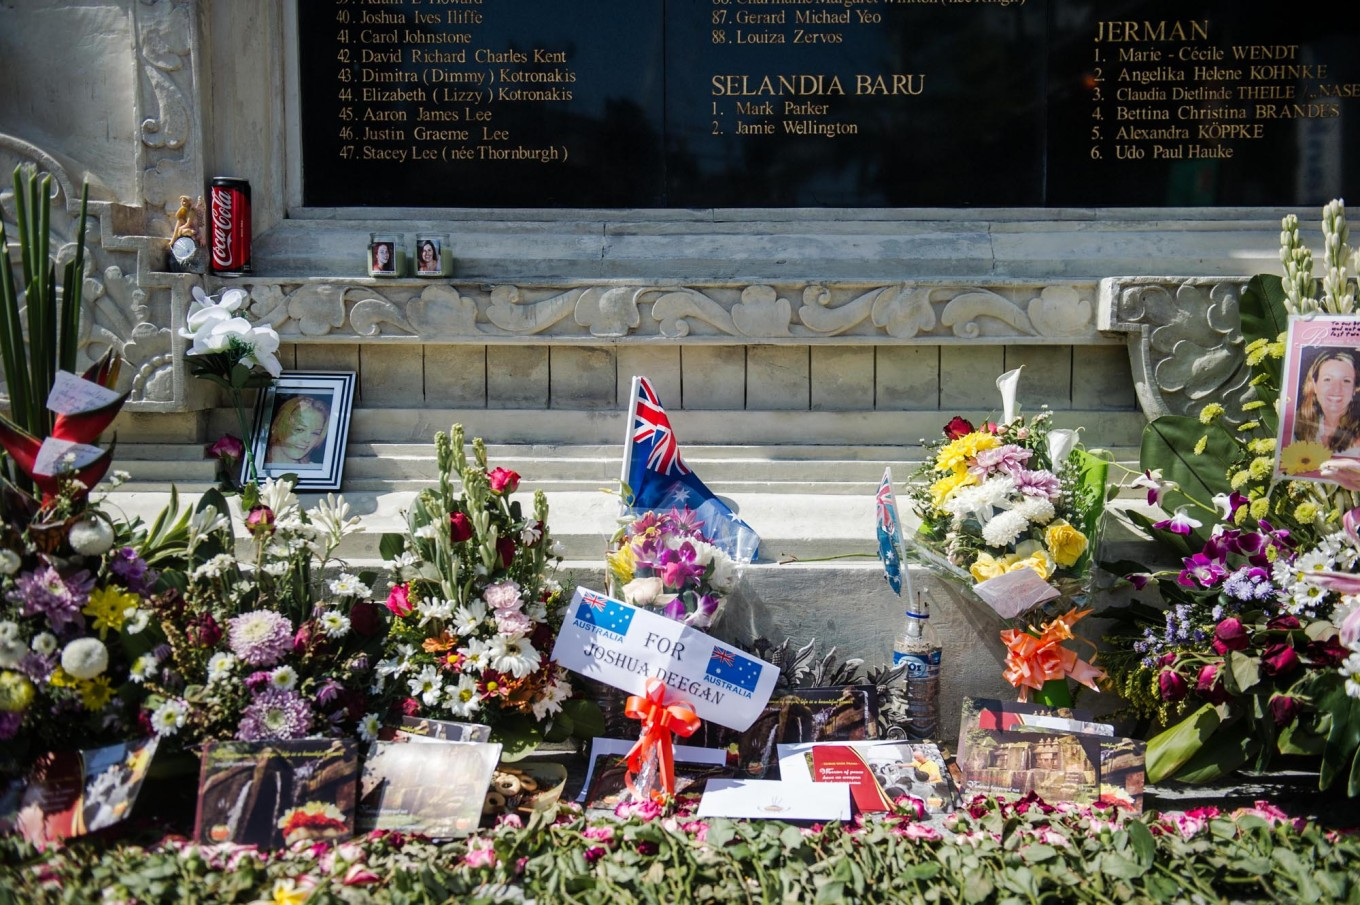 Flowers, letters, photographs and incense are laid at the monument to honor the Bali bombing victims. JP/Anggara Mahendra